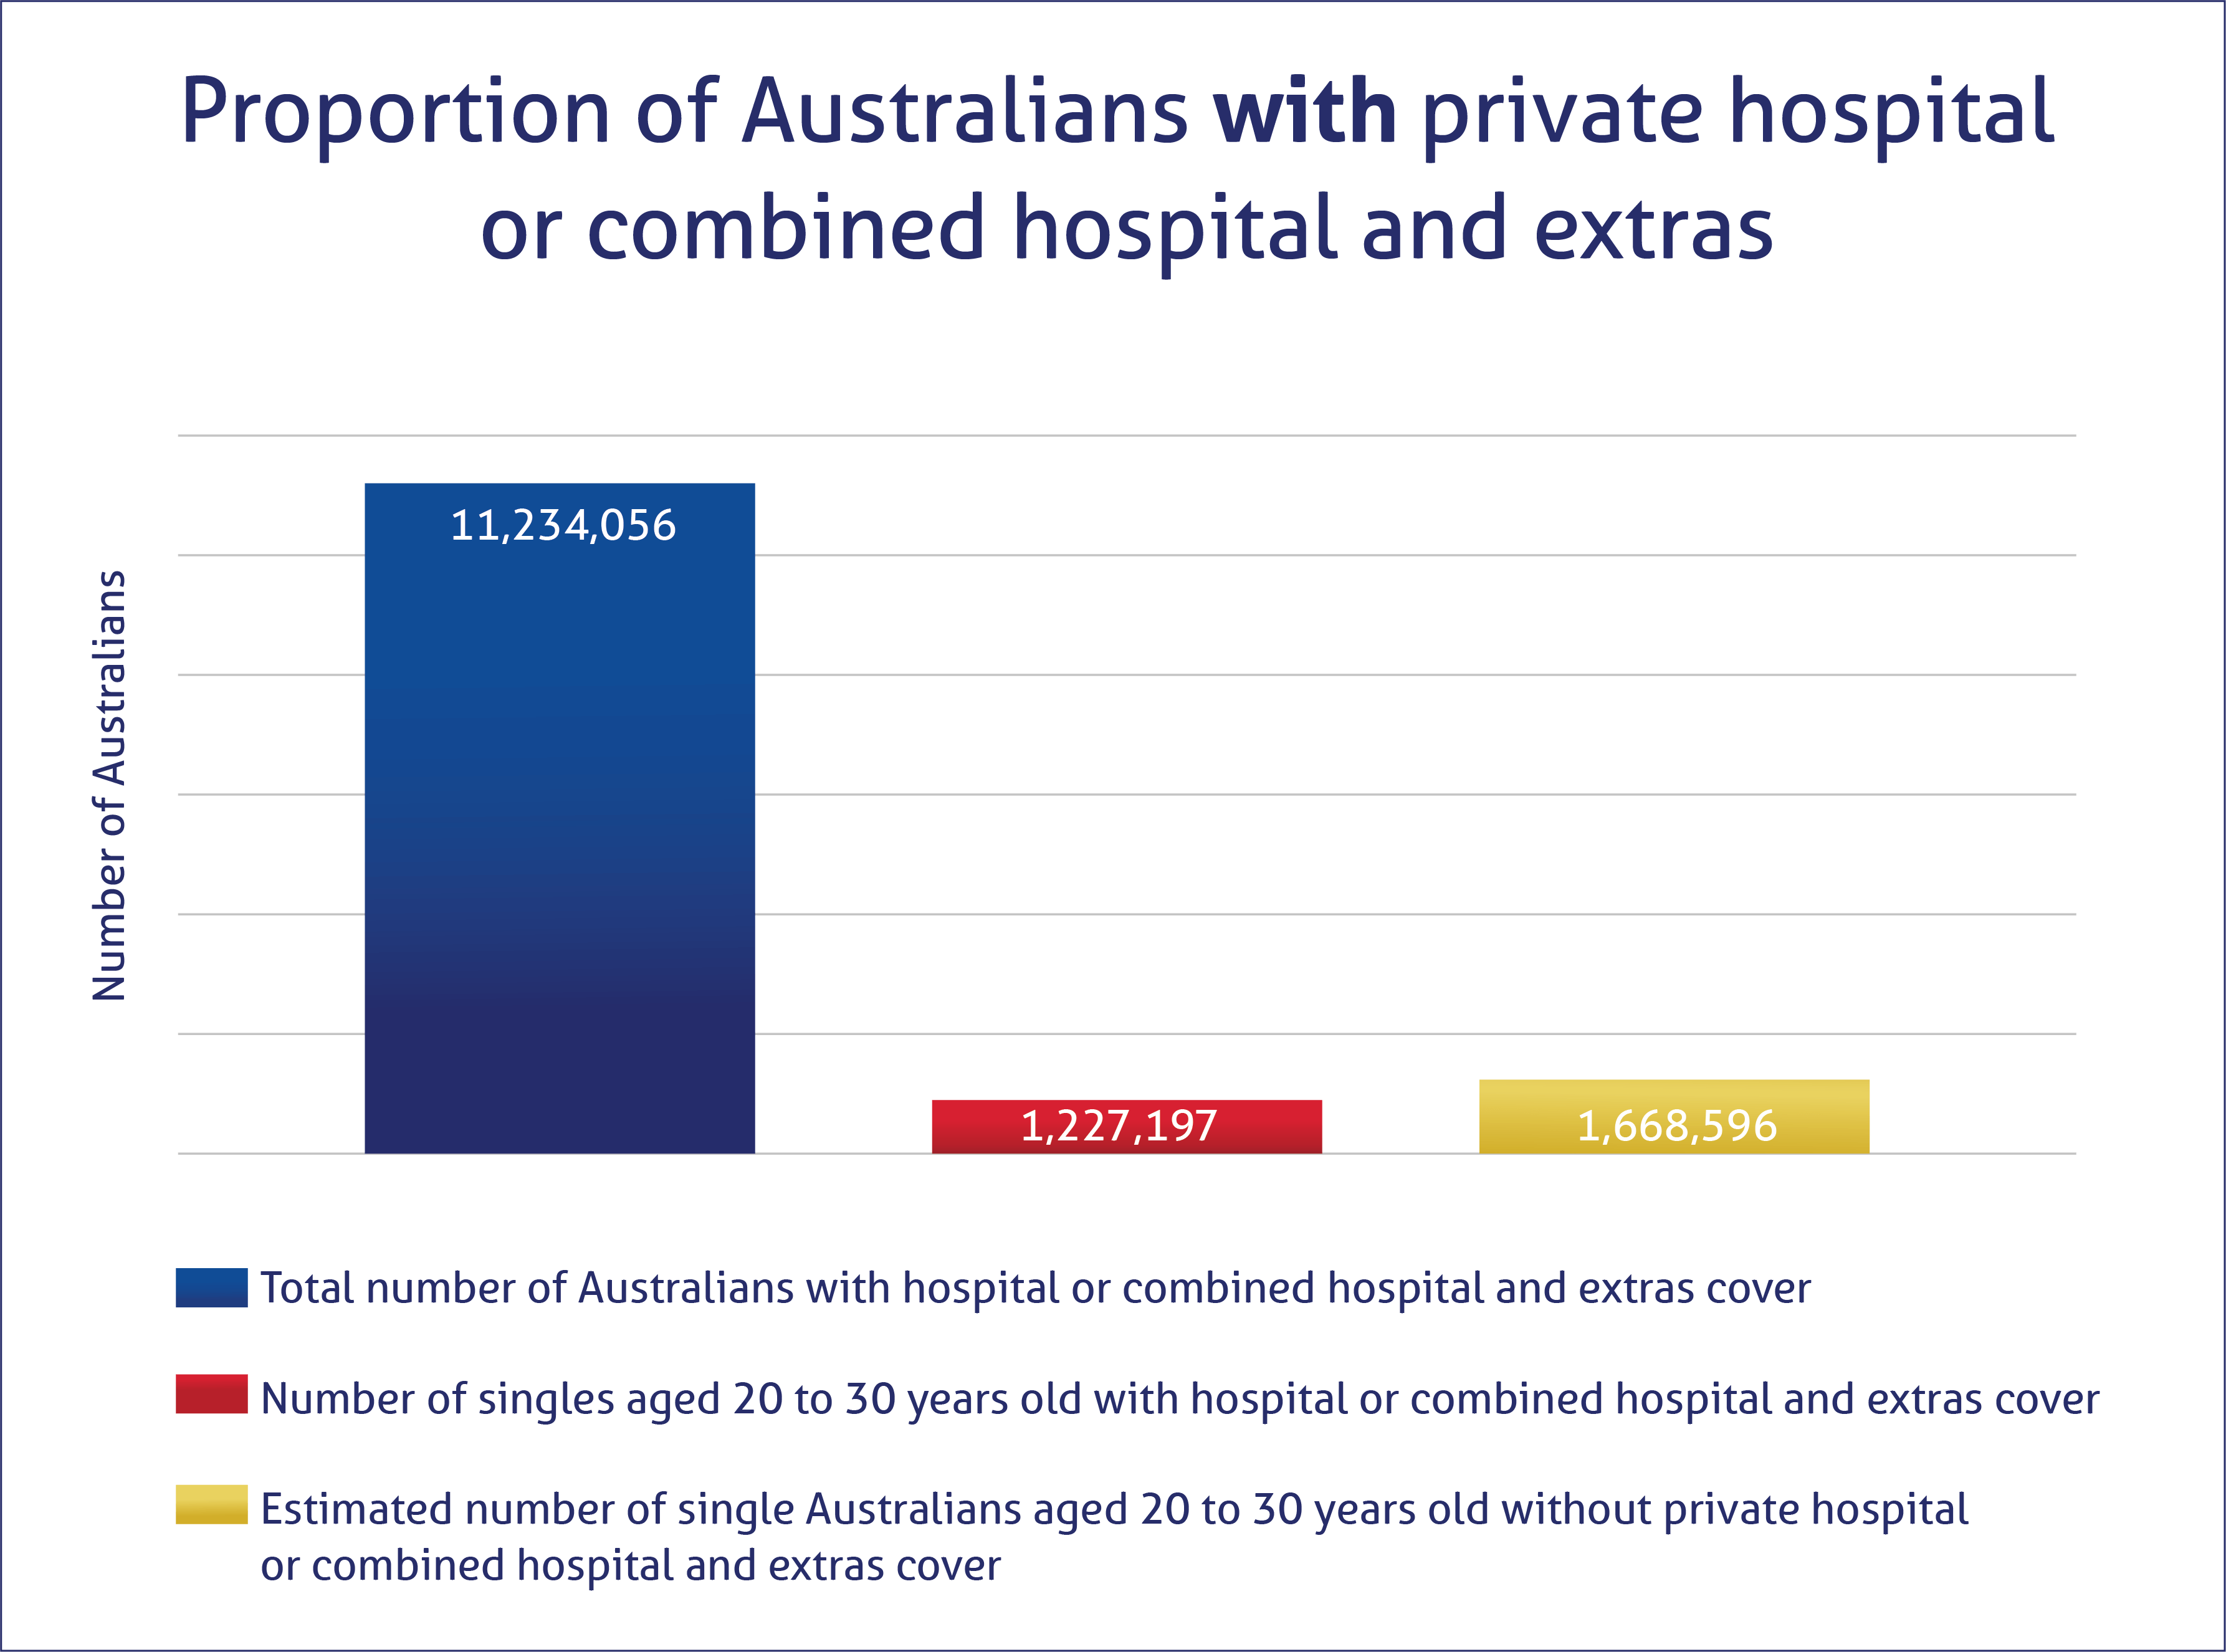 Proportion of single young Australians with private hospital or combined hospital and extras cover